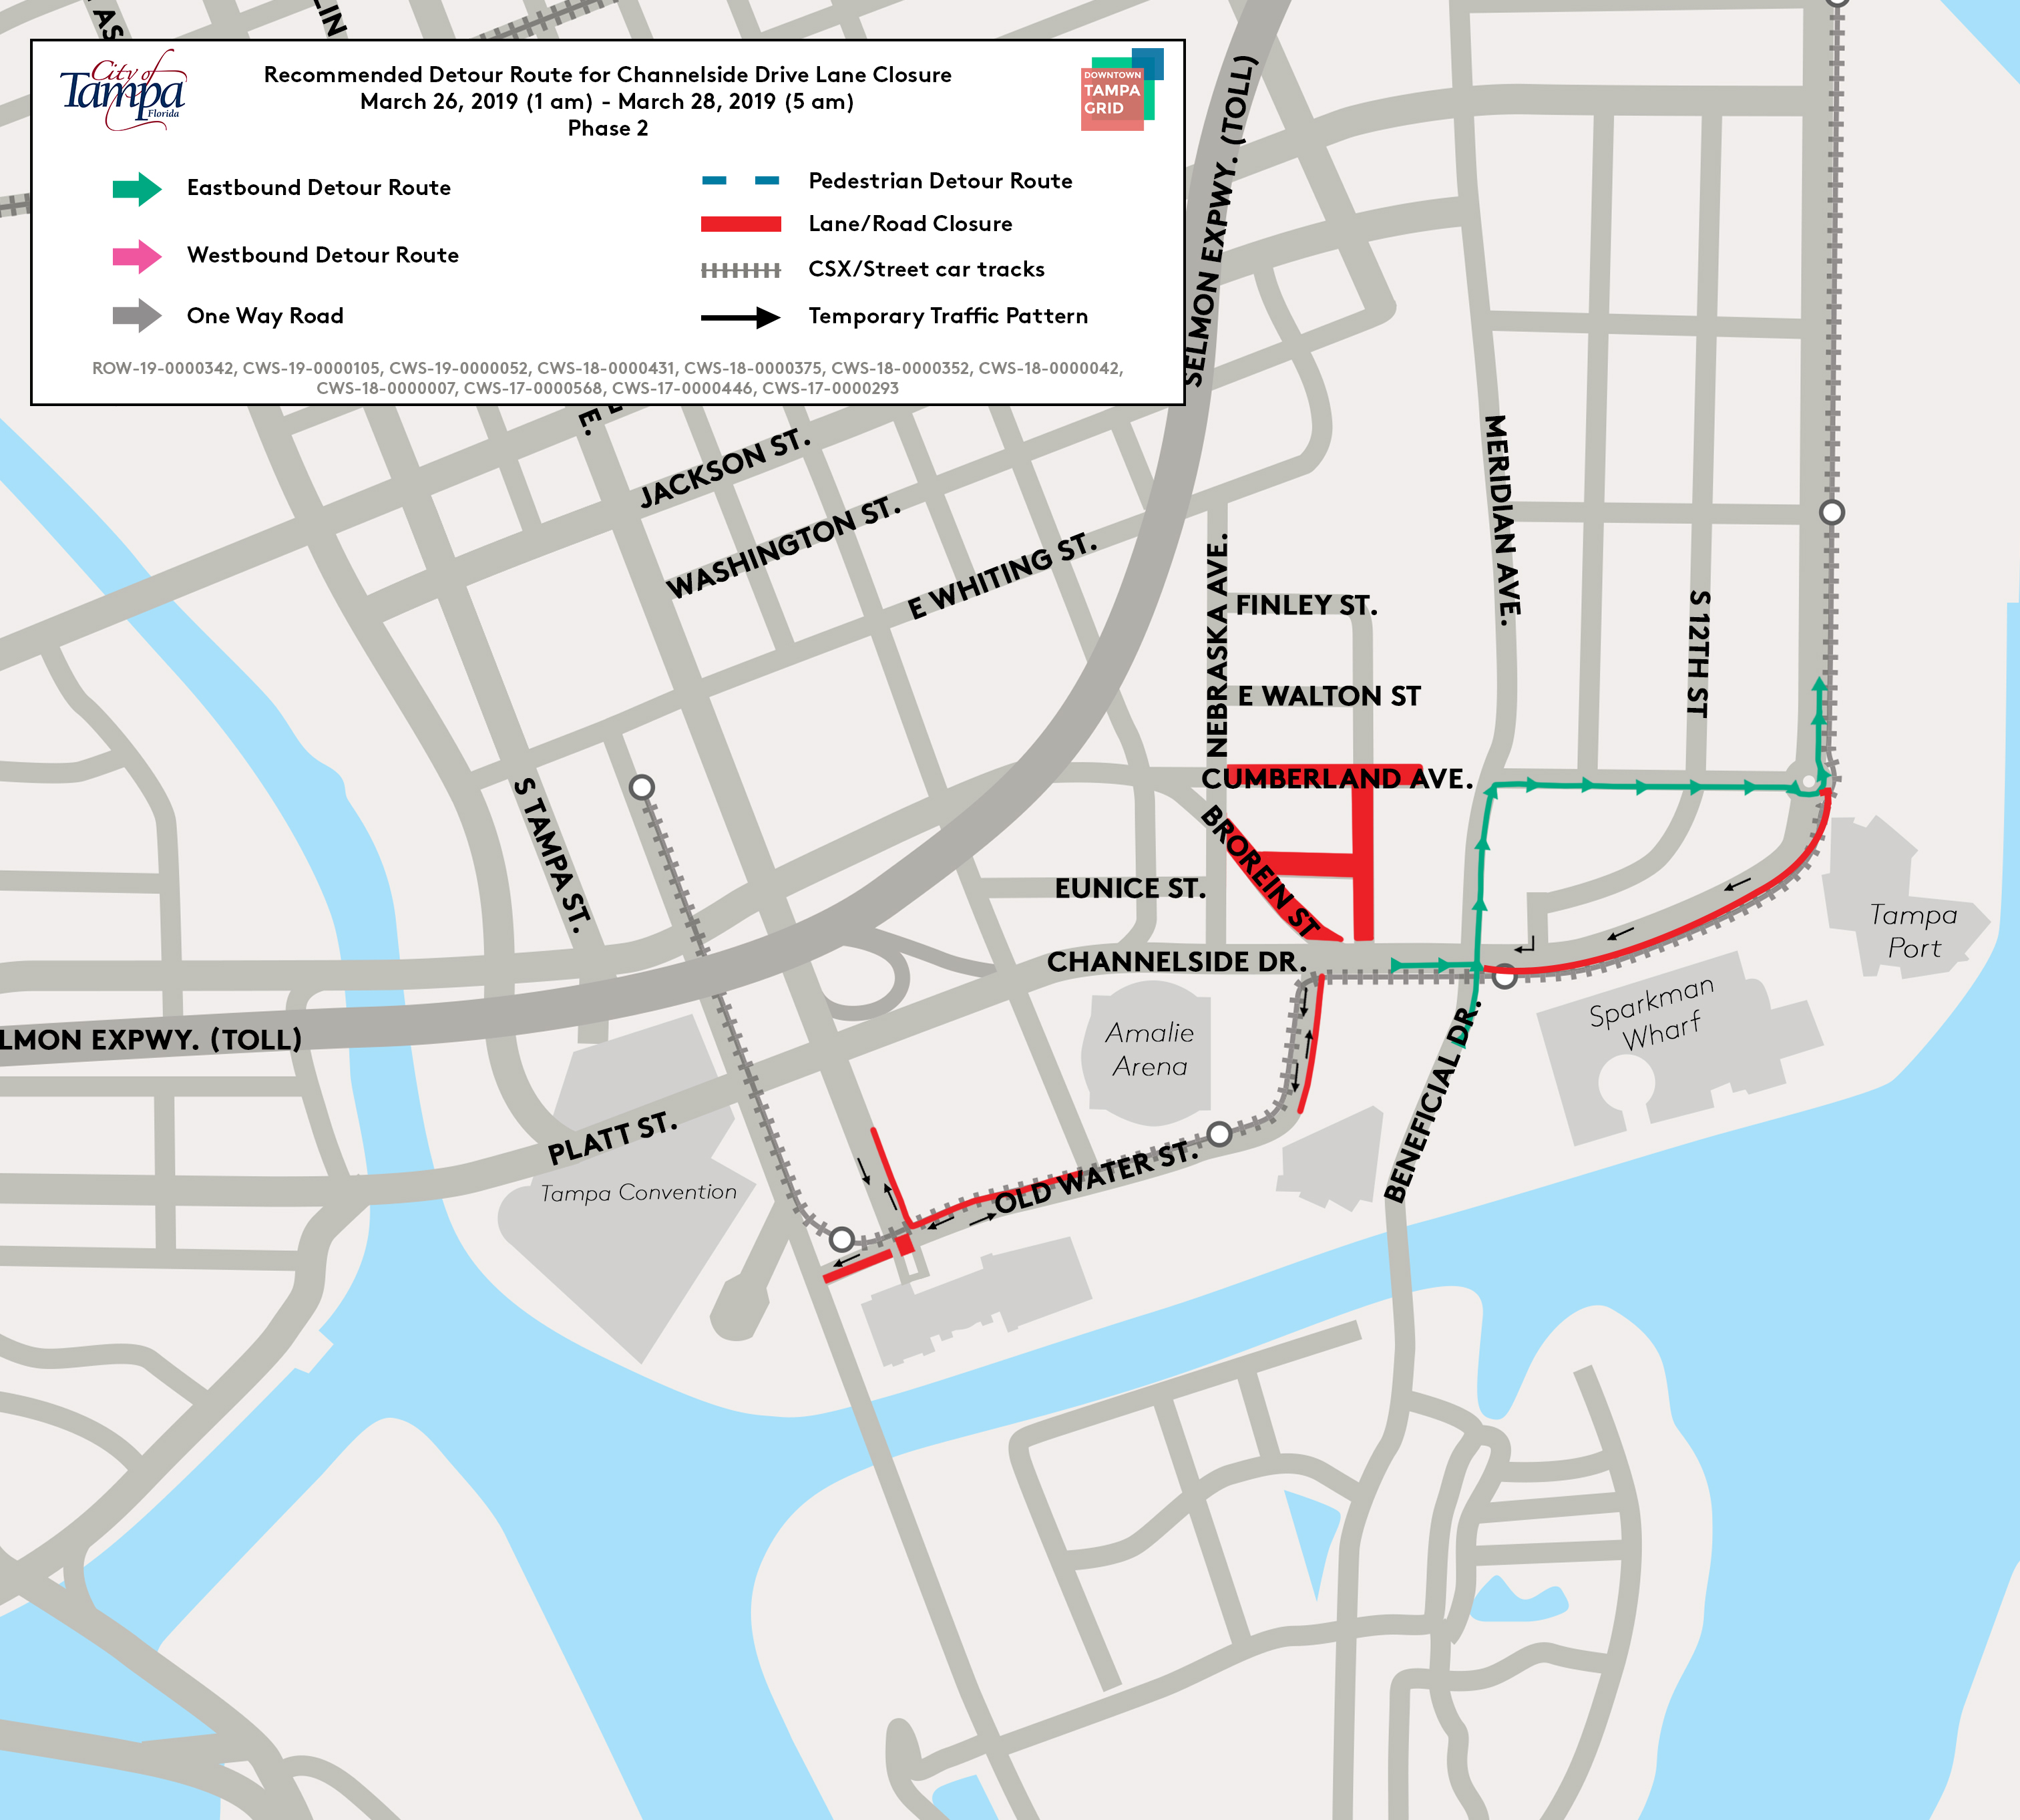 Downtown Tampa Grid Project - Updates on